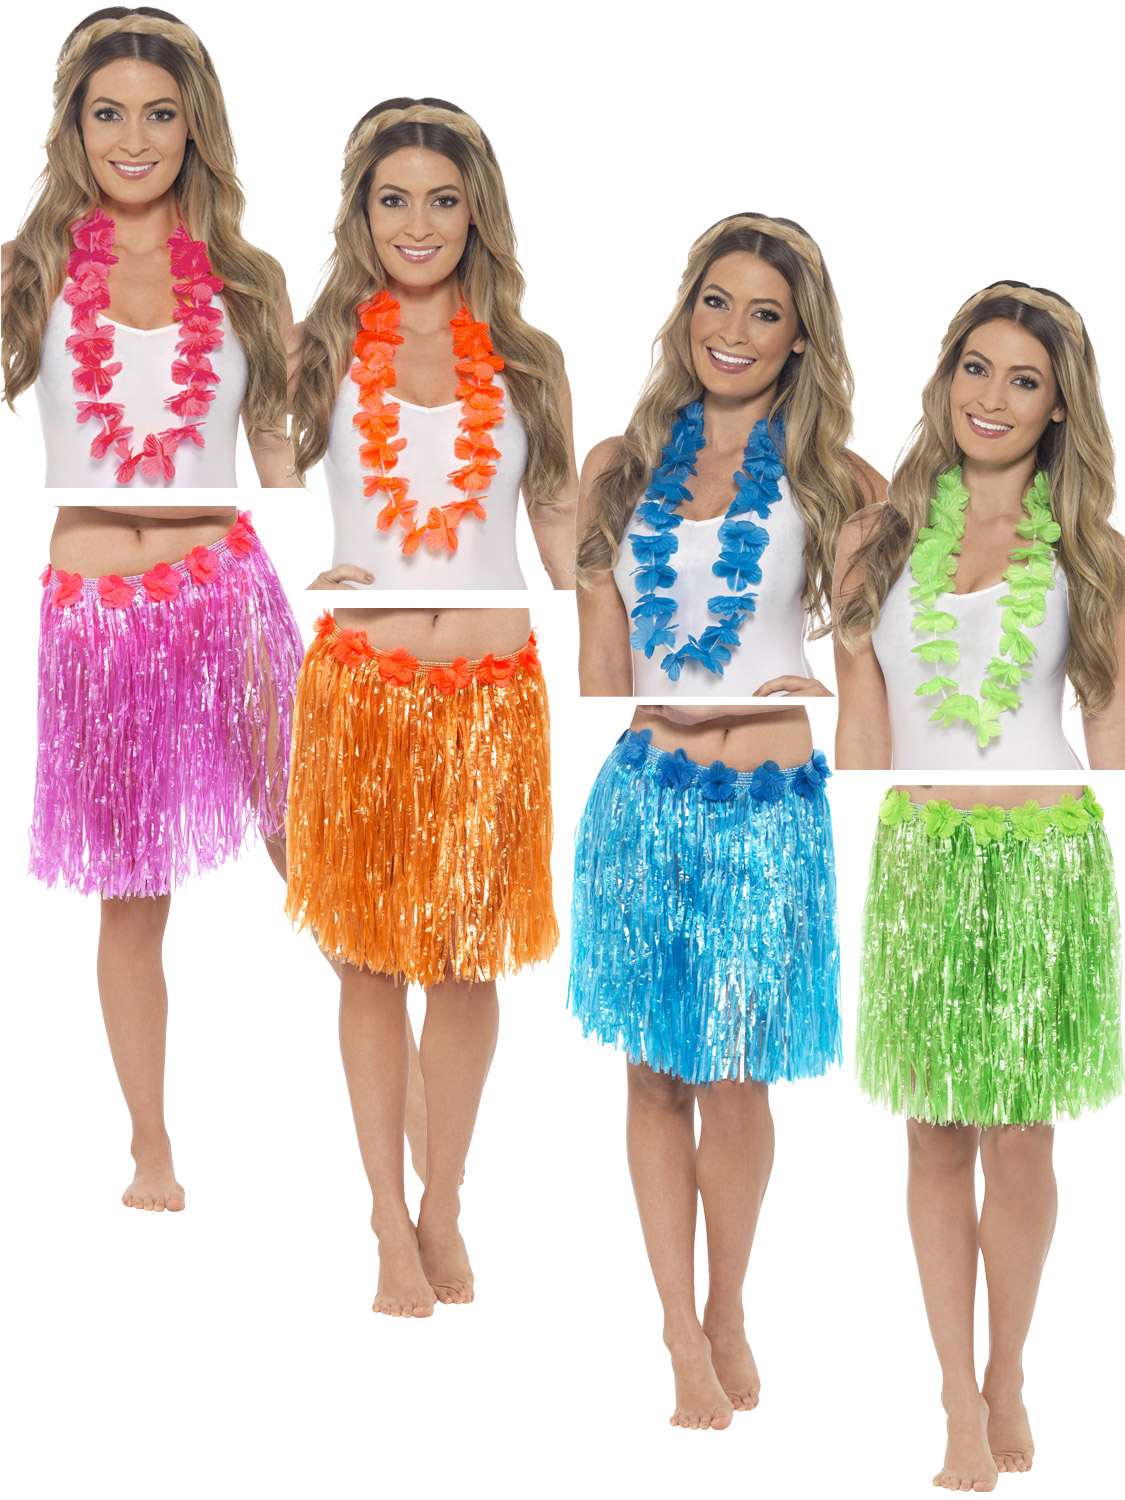 f66023377d62 Are you going to a Hawaiian themed party? Easily get into character with  this pretty Hawaiian Skirt… You could even team it with one of our Leis to  really ...